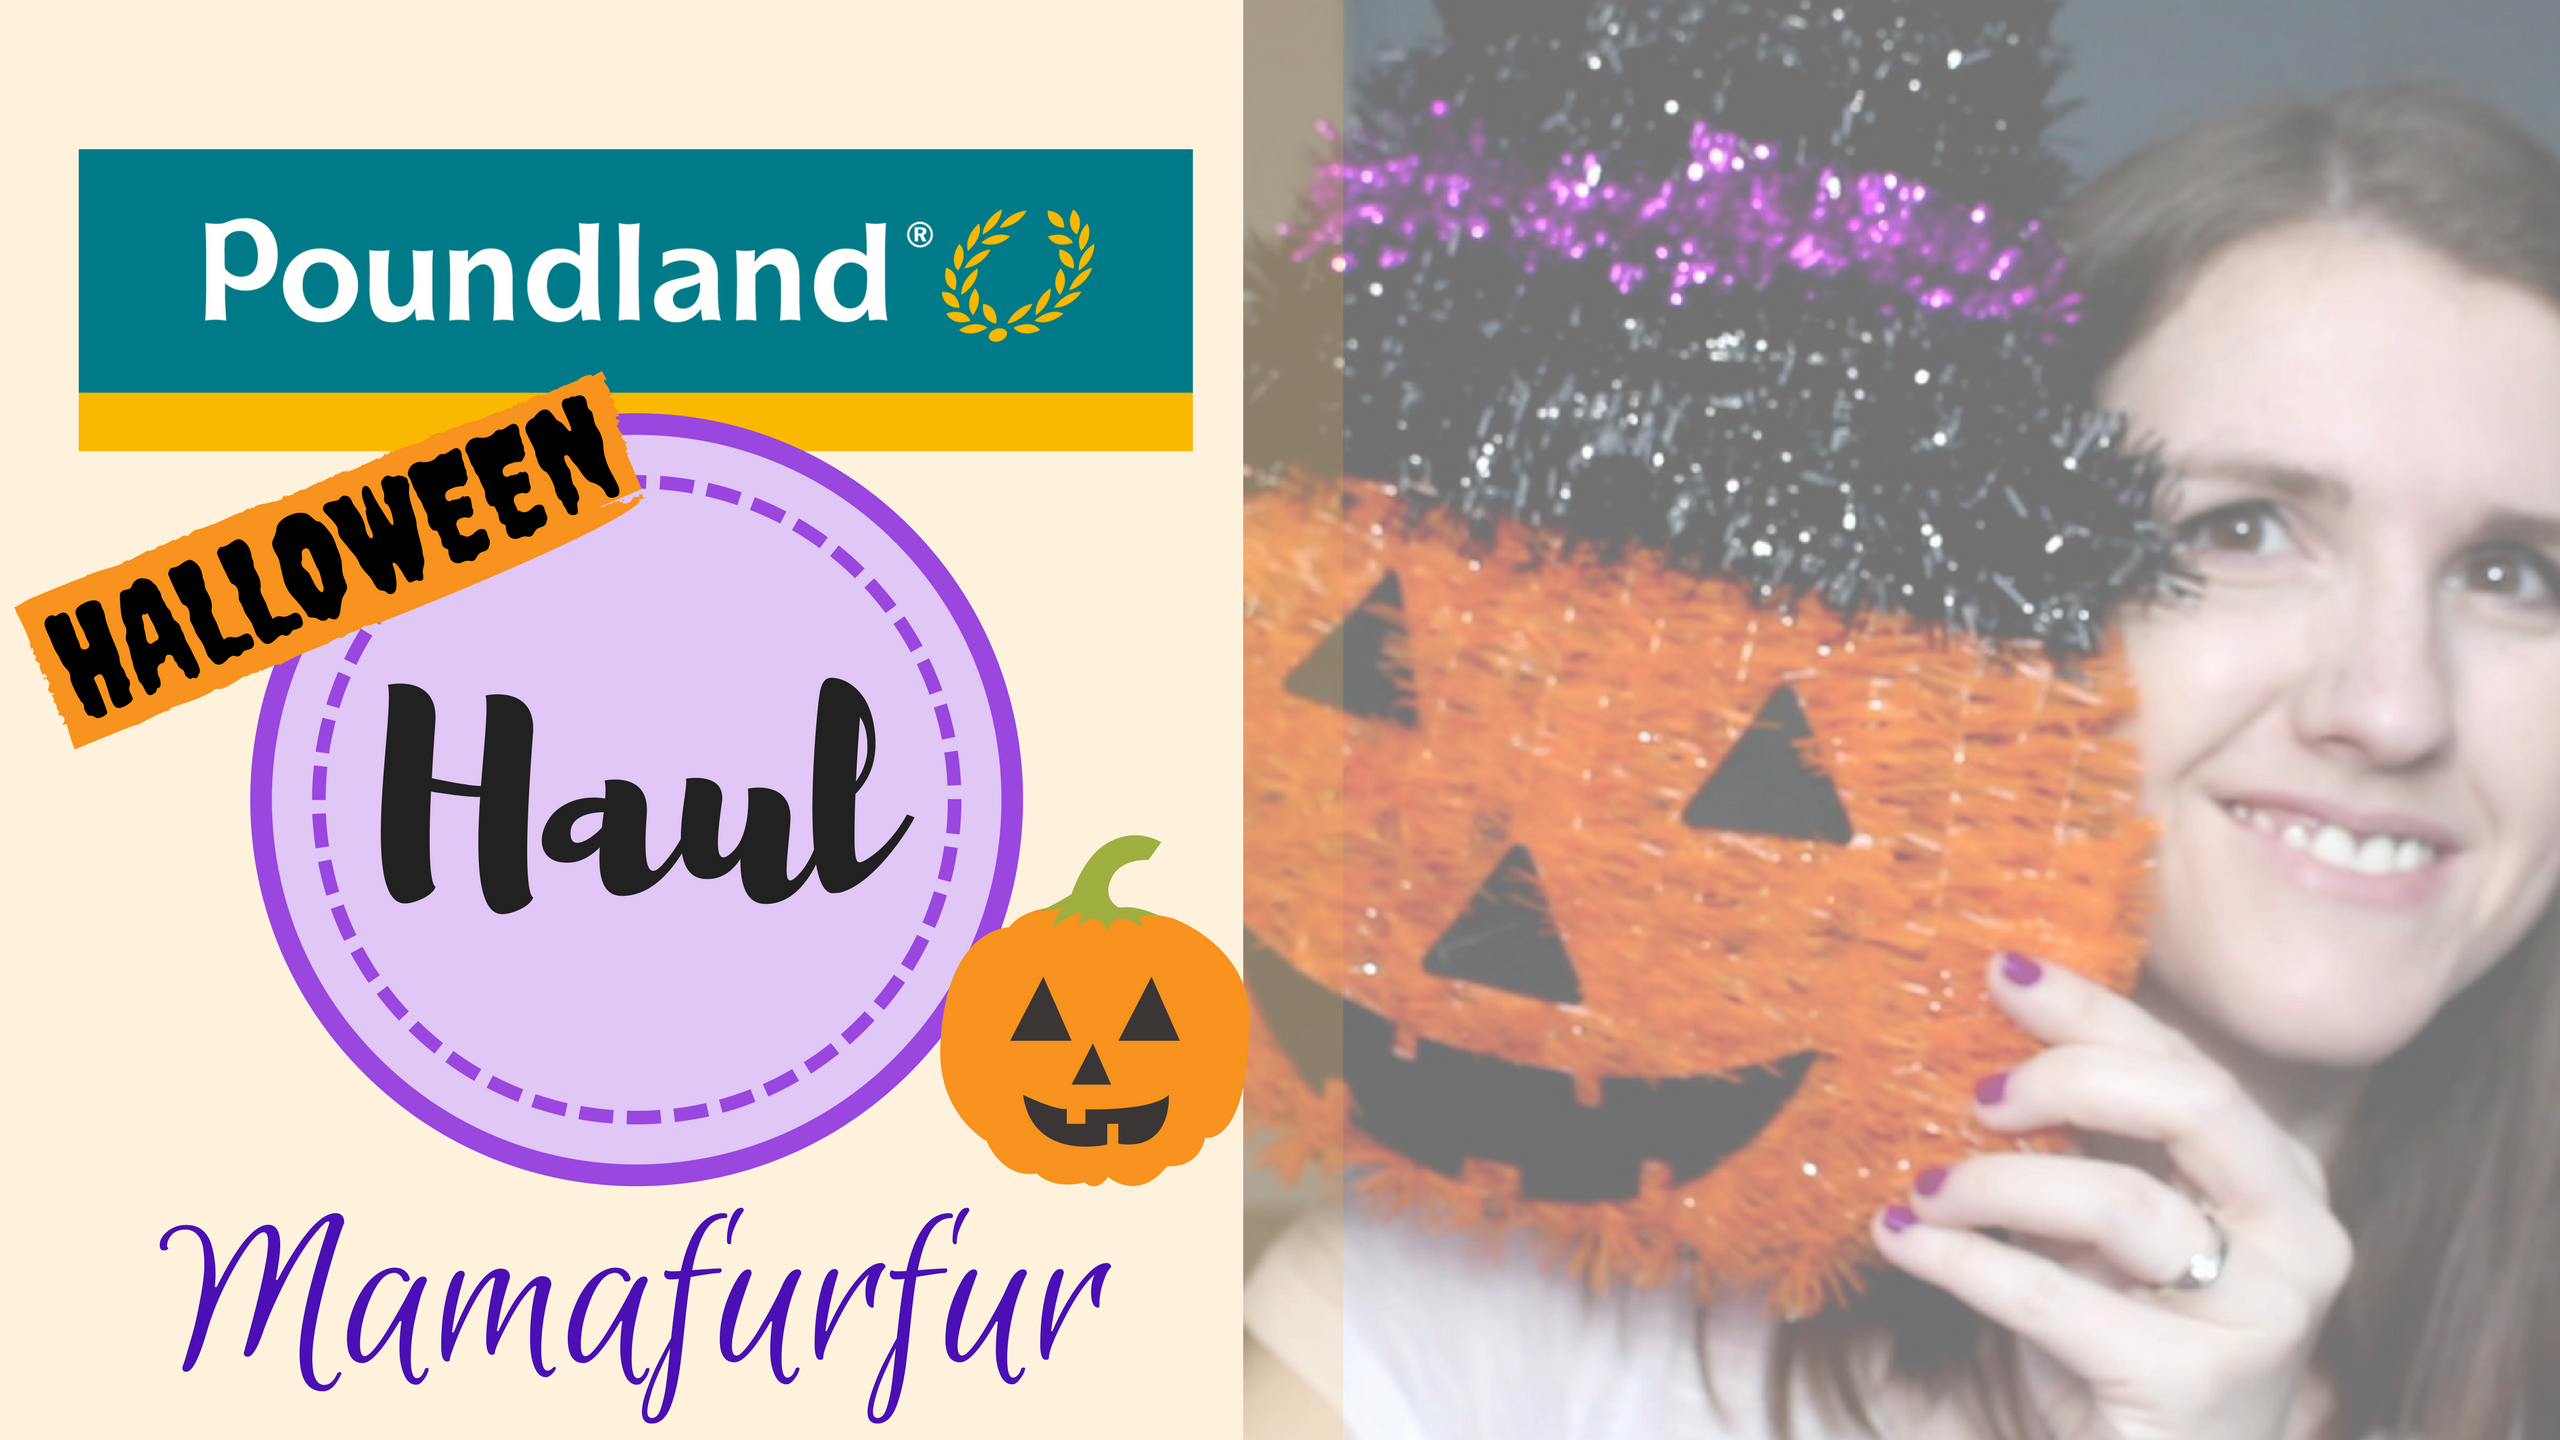 Poundland Haul for Halloween - Mamafurfur Youtube Channel